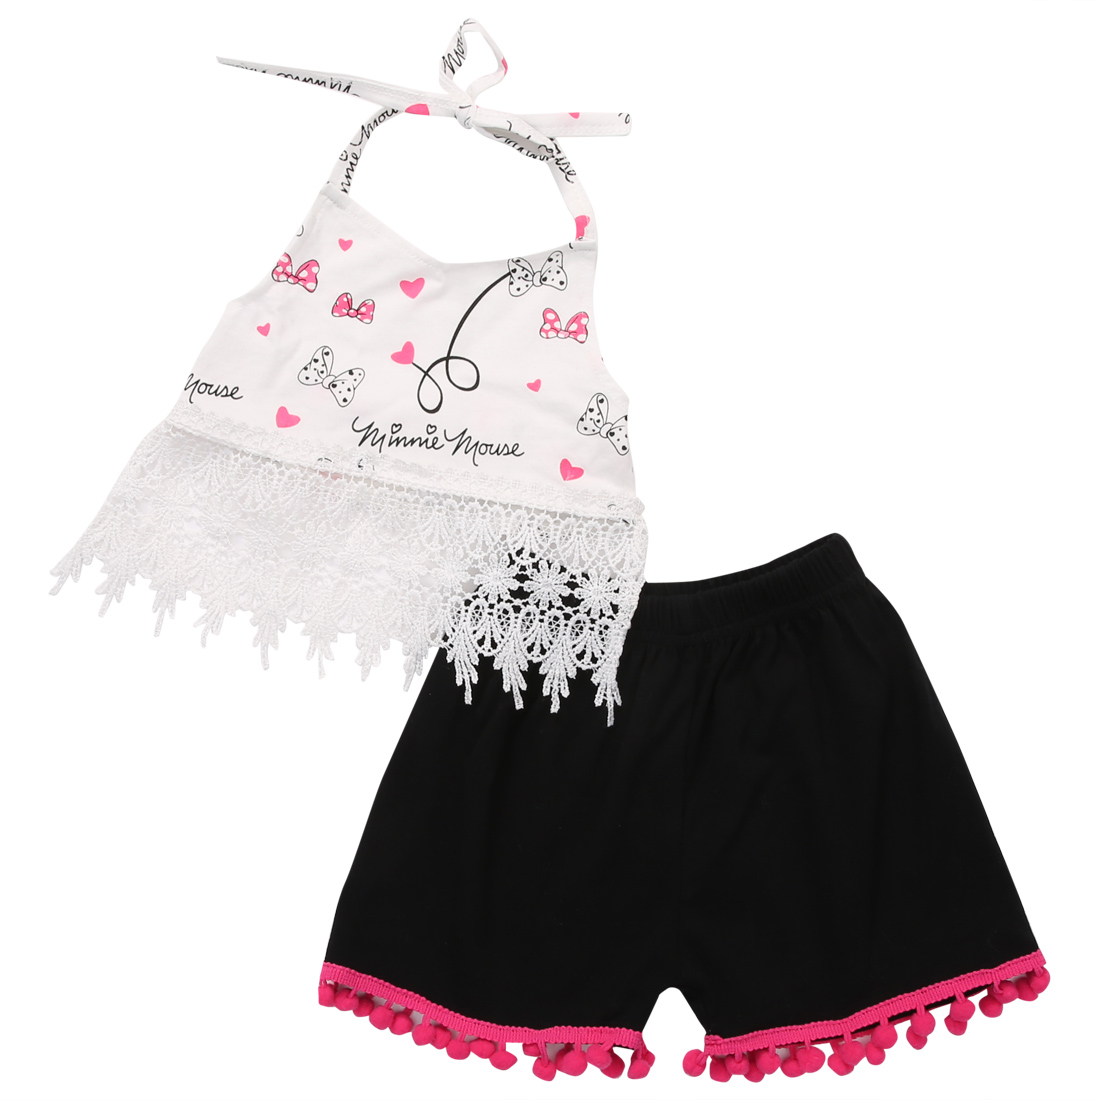 2PCS Newborn Baby Girl Clothes 2017 Summer Lace Crop Top Tanks +Tassel Hot Pant Outfit Kids Girls Clothing Set Bebek Giyim 0-24M 2017 new fashion kids clothes off shoulder camo crop tops hole jean denim pant 2pcs outfit summer suit children clothing set